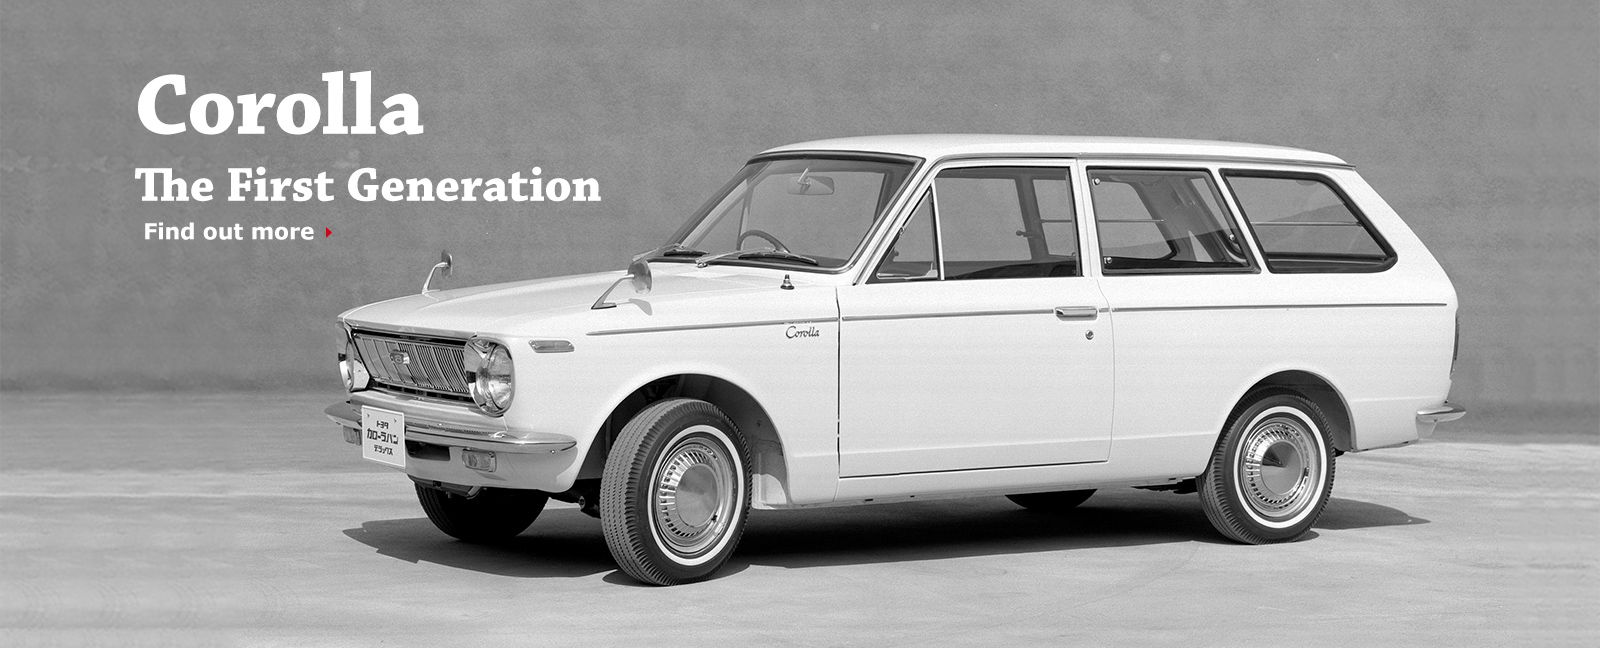 Corolla The First Generation Find out more